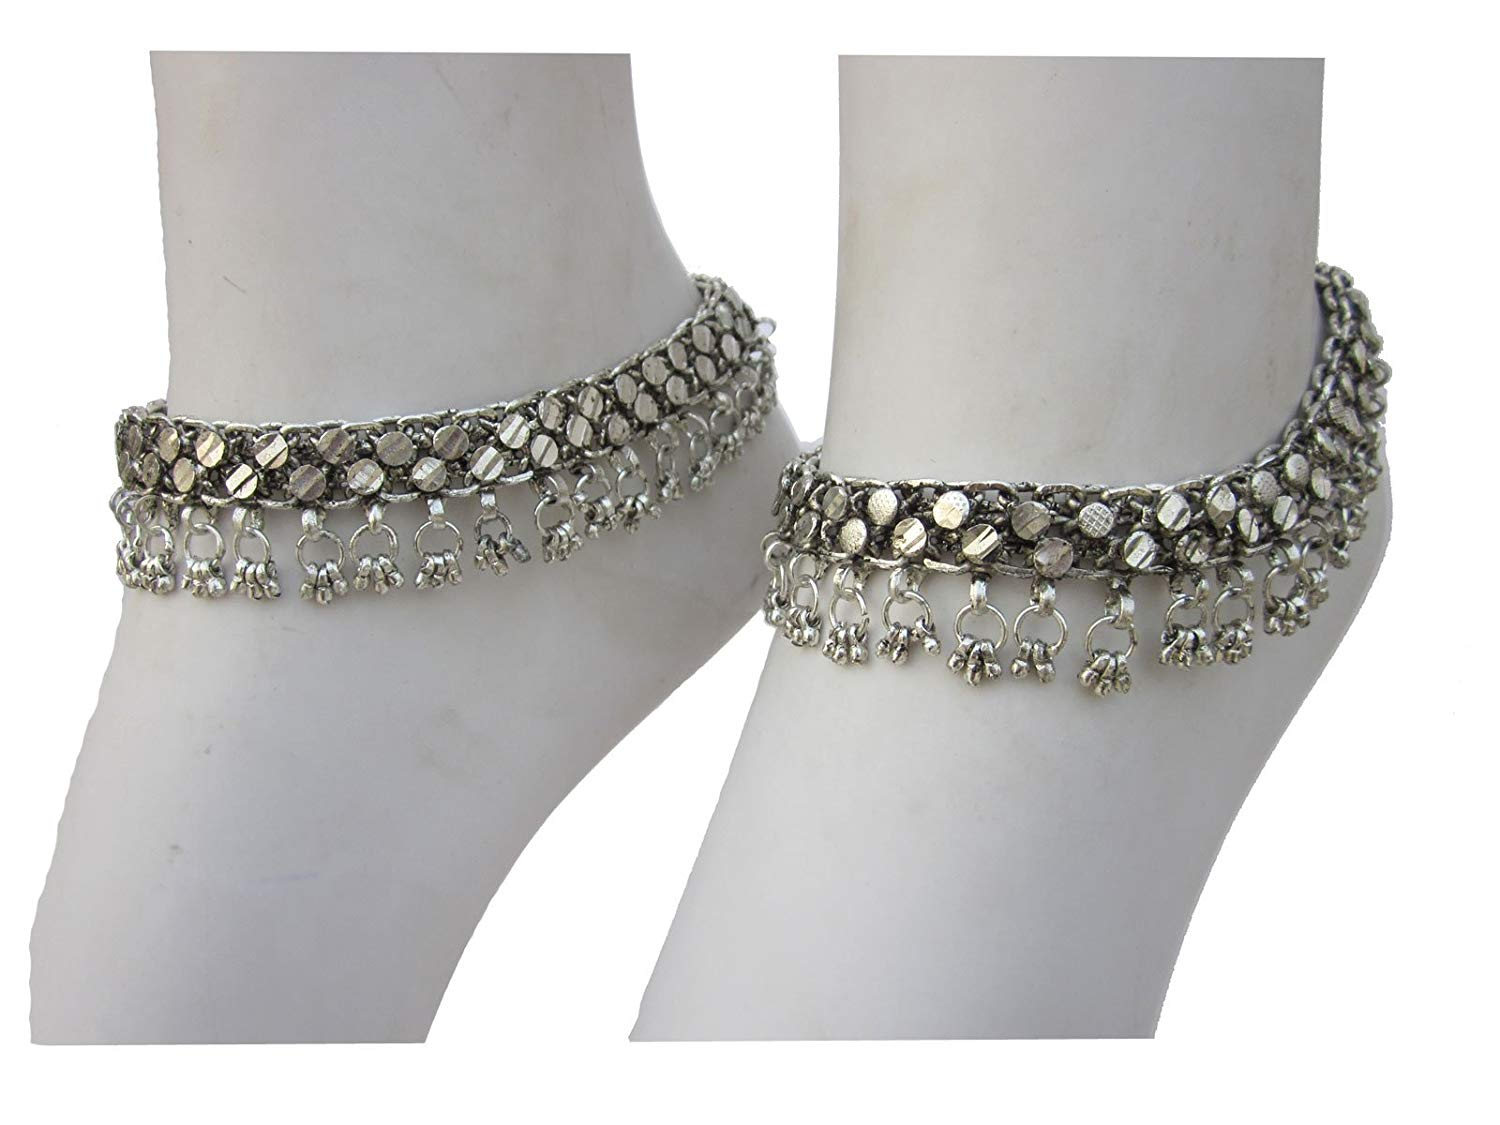 Chain Anklet Bracelet | Ankle Feet Fashion Jewelry | Boho Barefoot Sandals | Gypsy Boheminan Festival Vintage Retro Tribal Style Novelty Accessory | Indian Payal Handcrafted Plated Silver Oxidized